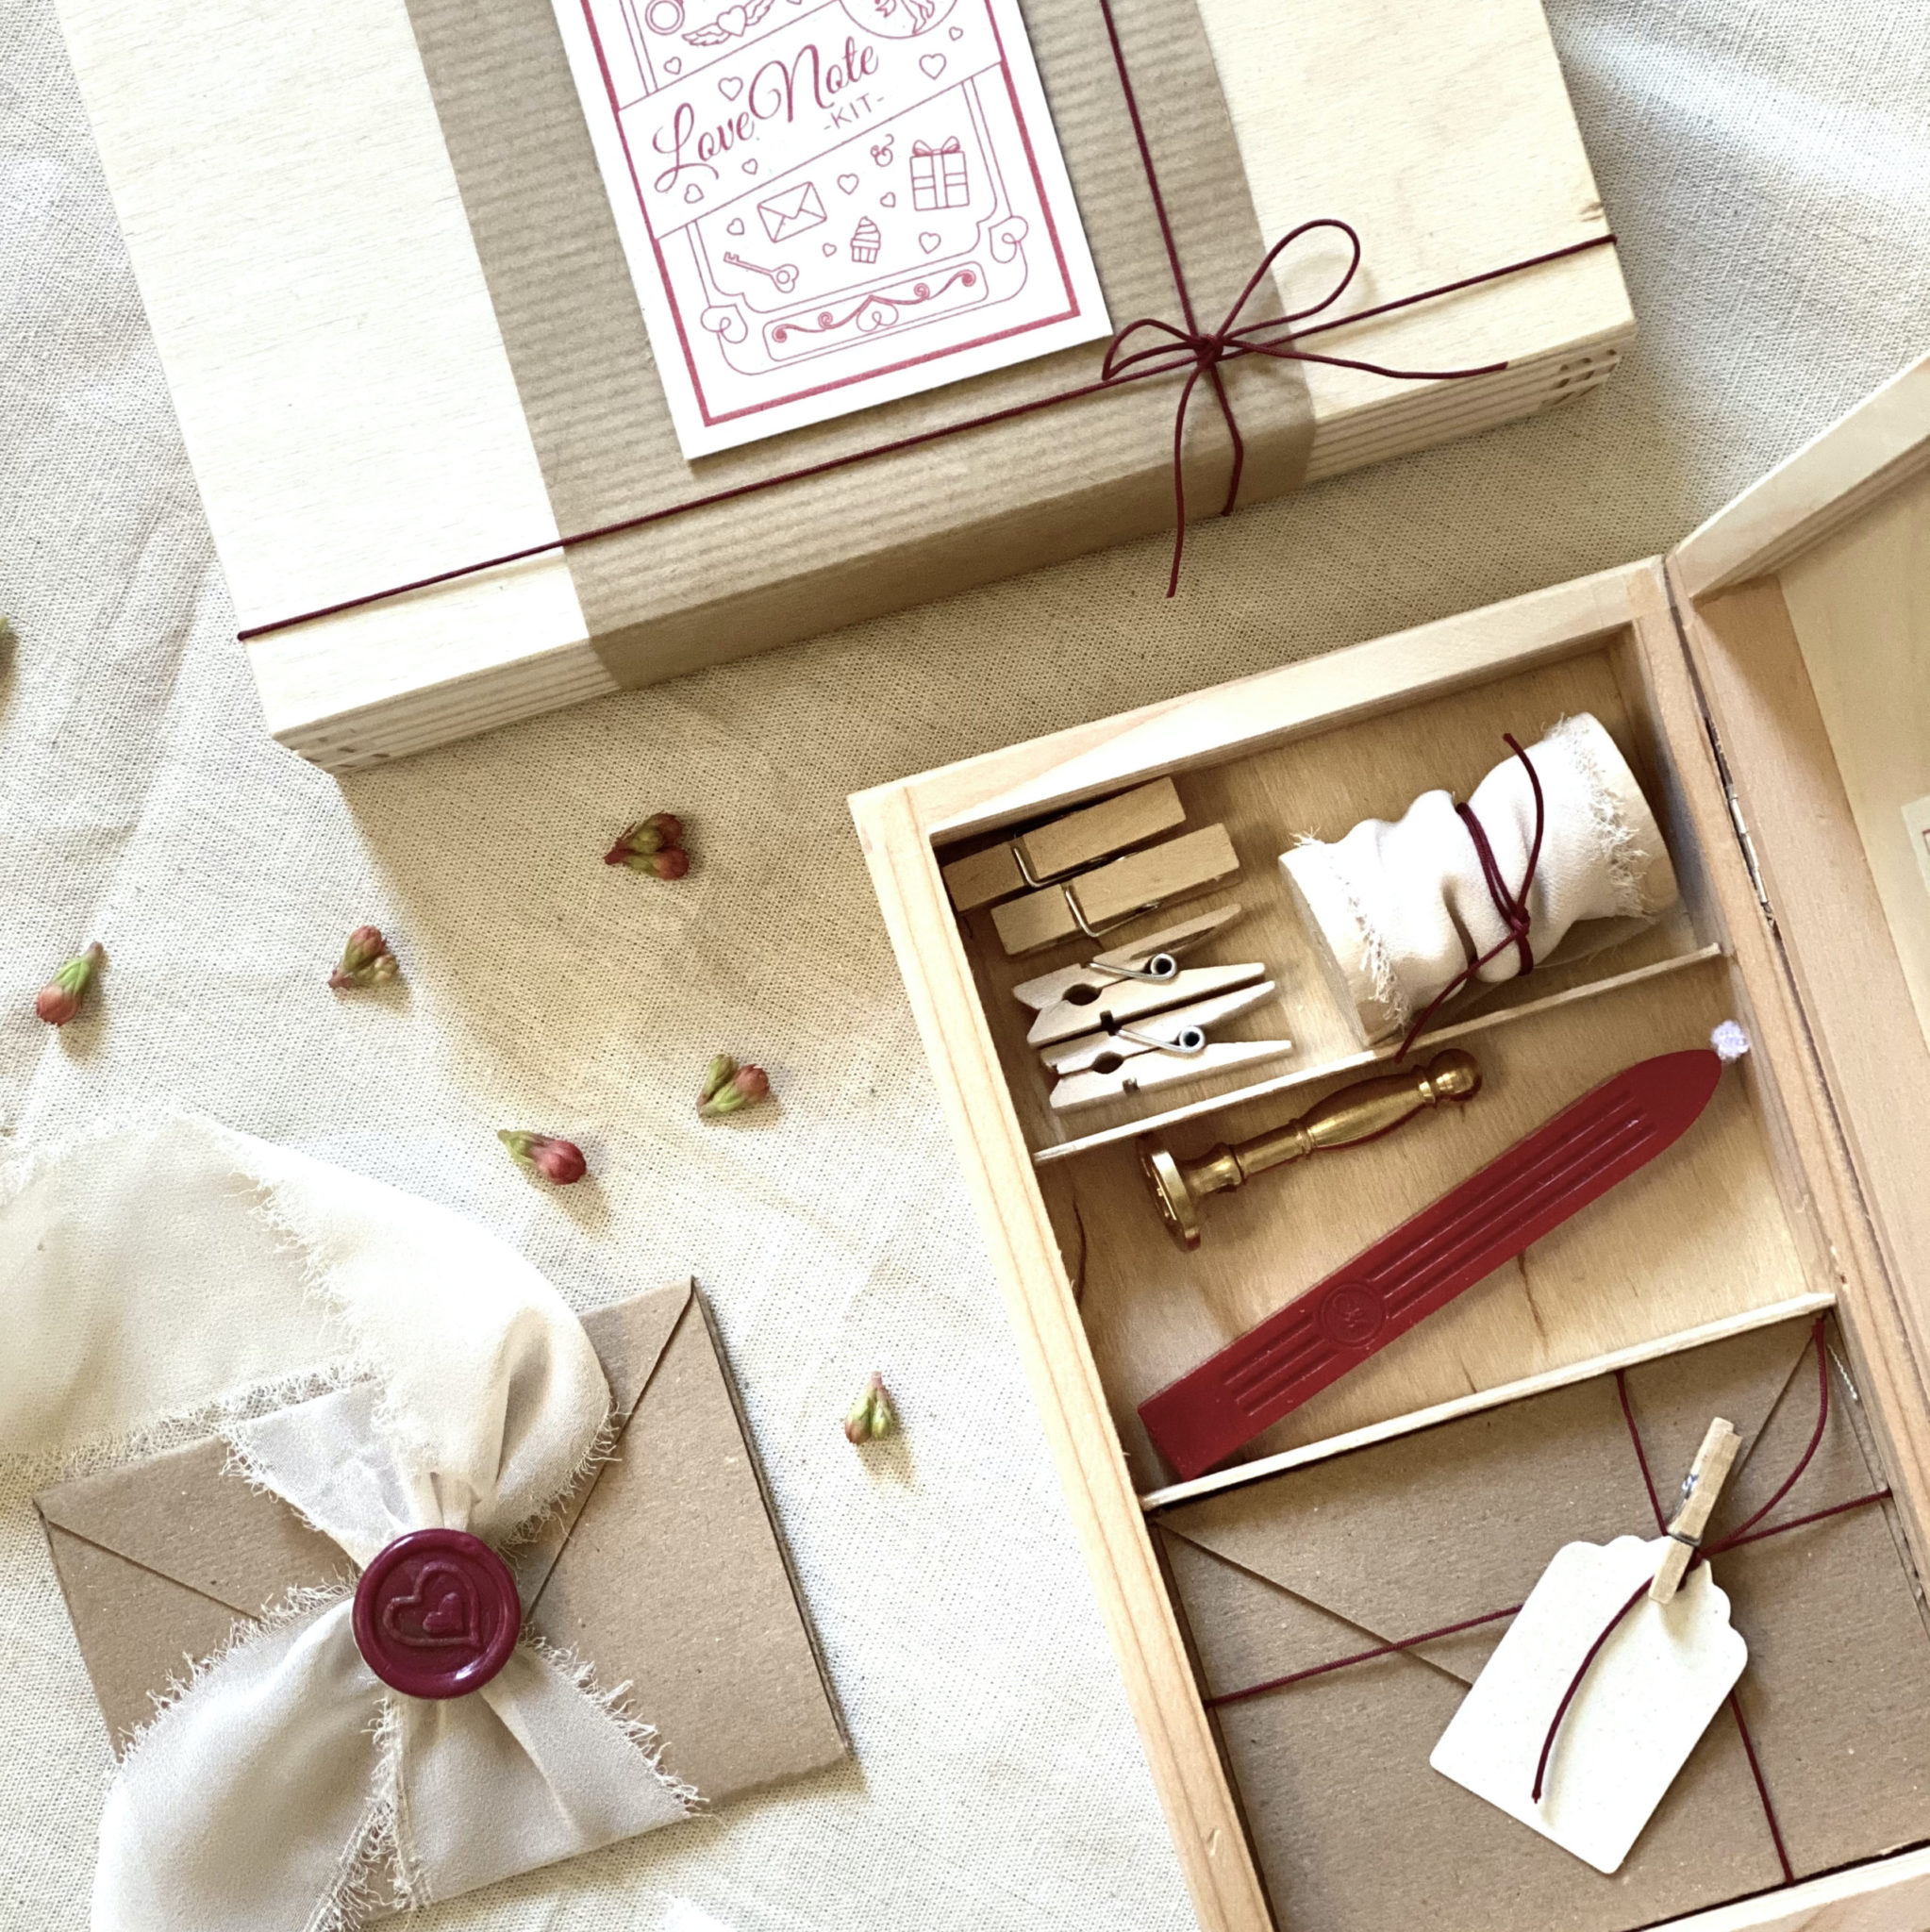 Love-Note-Kit-special-occasion-valentines-day-gift-box-contents-wax-seal-heart-stamp-envelope